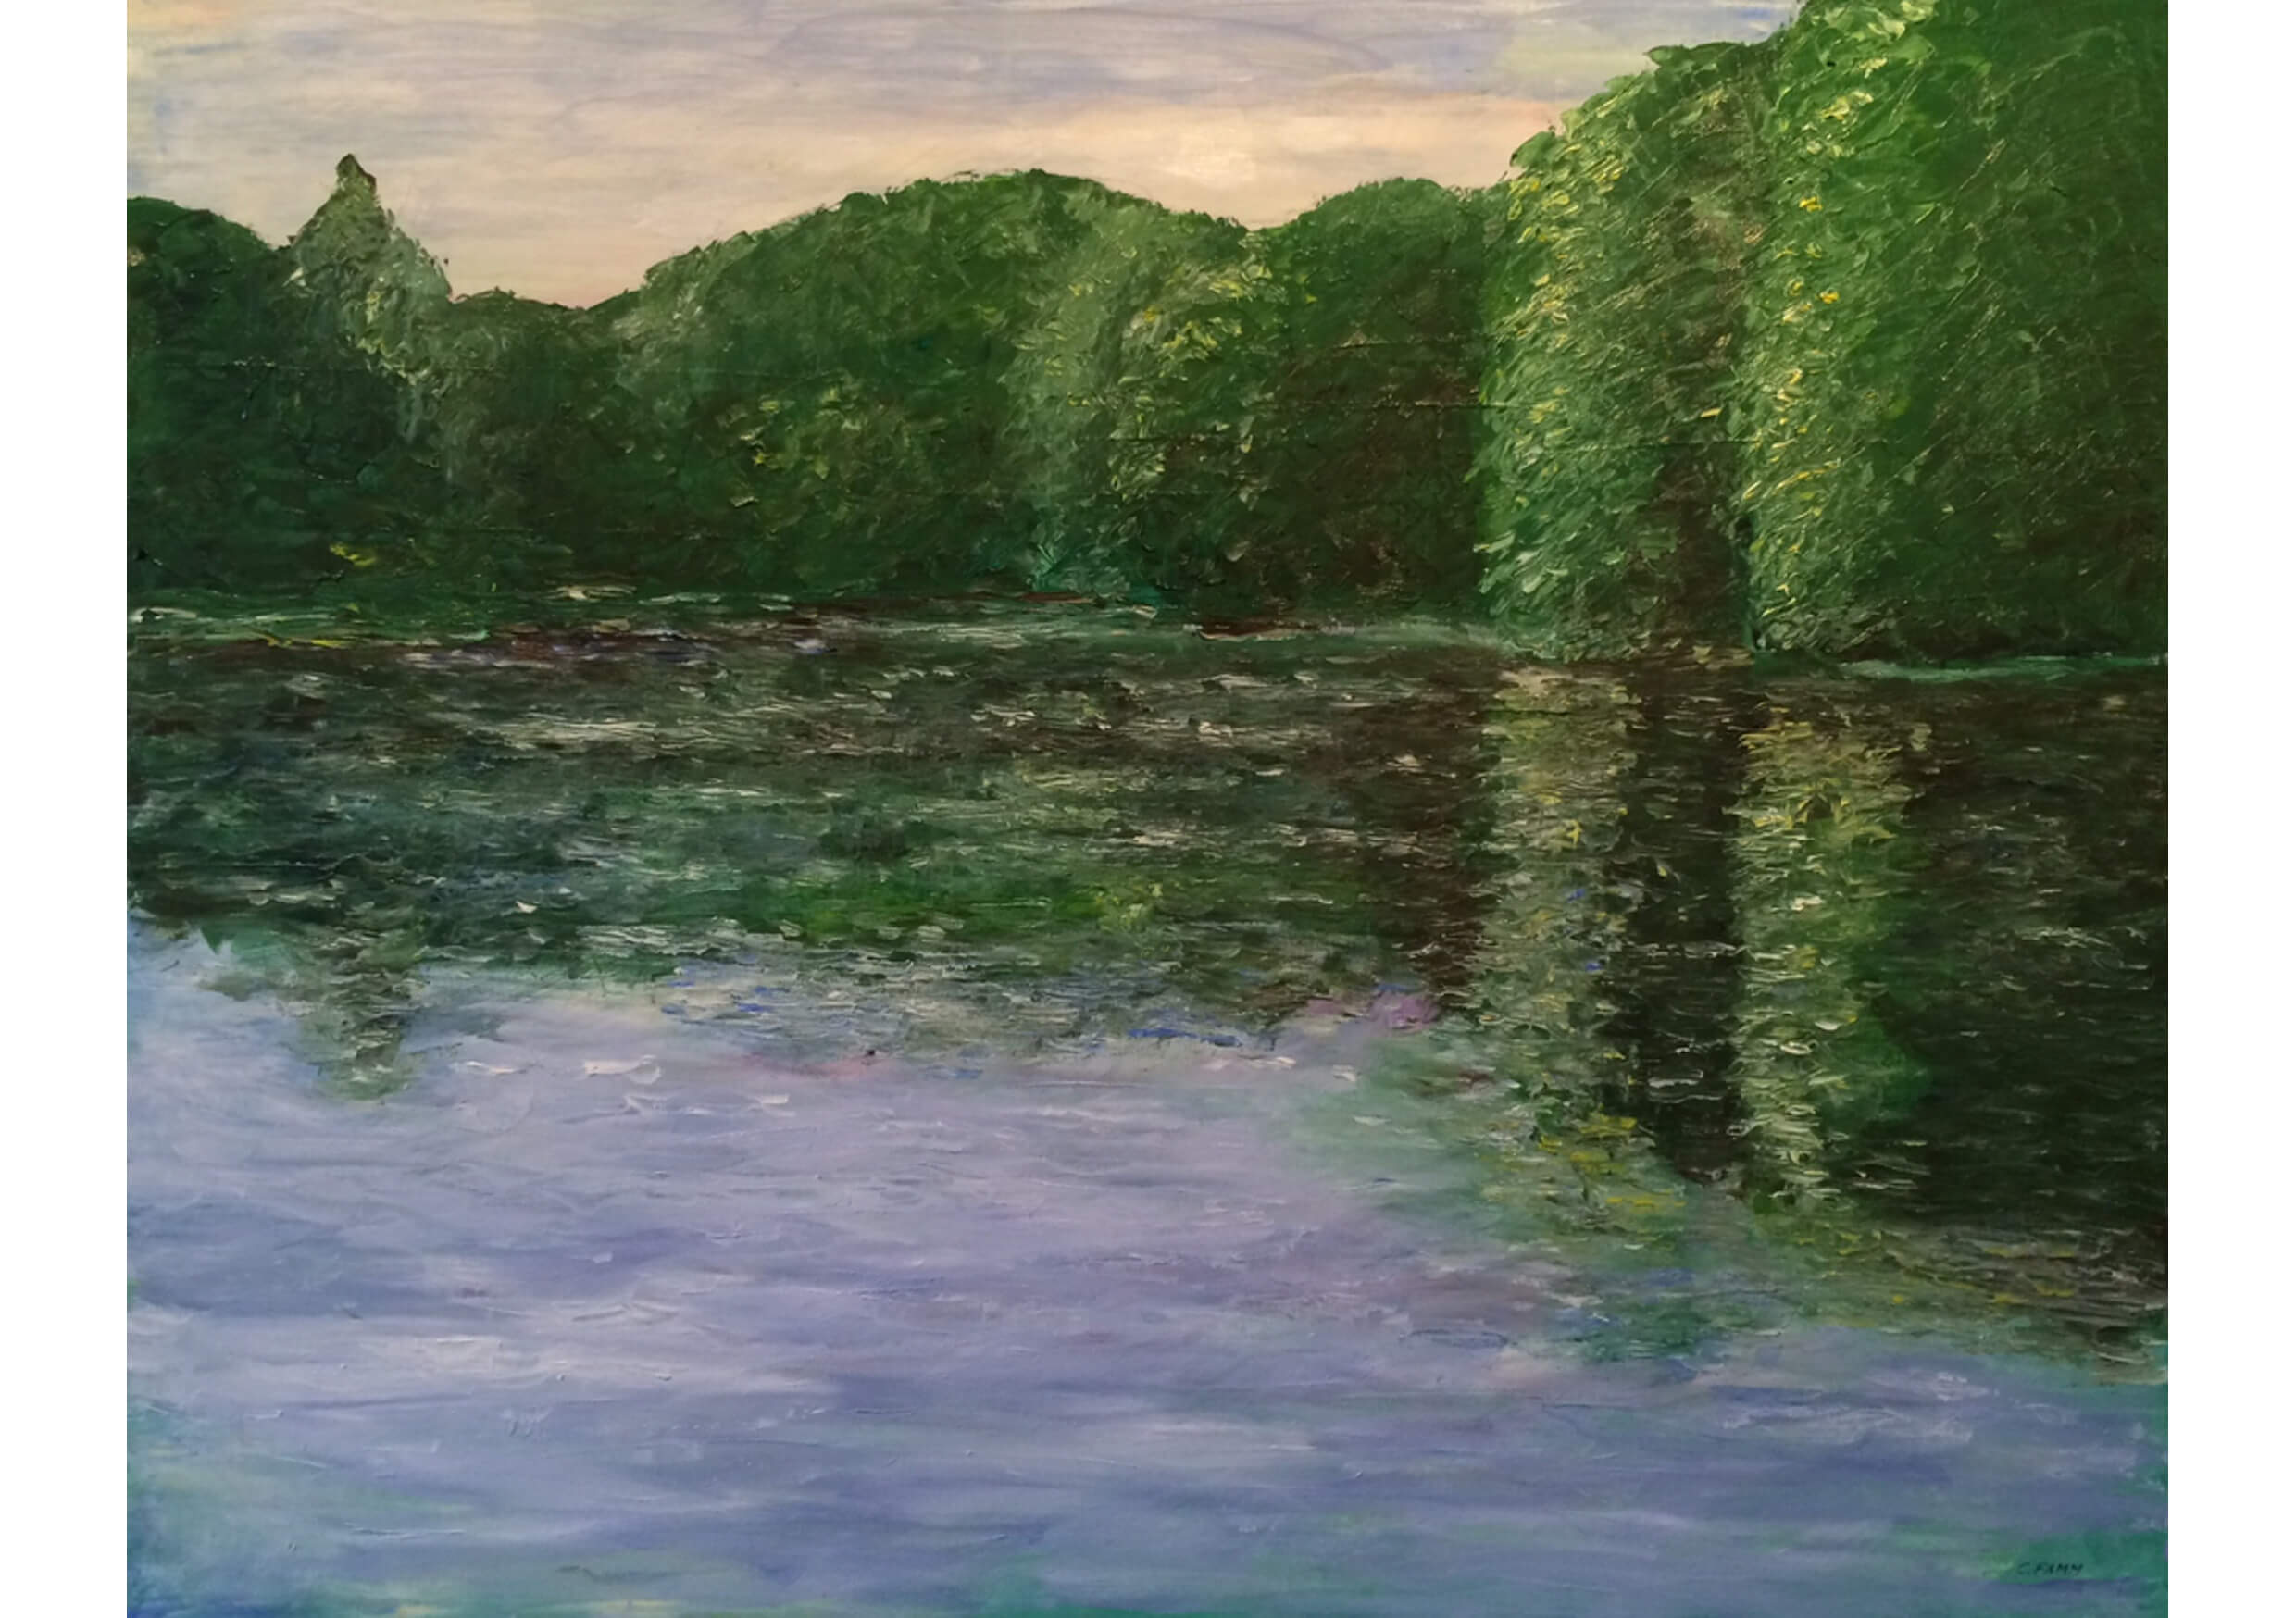 The banks, Oil on canvas, 80 x 100 cm